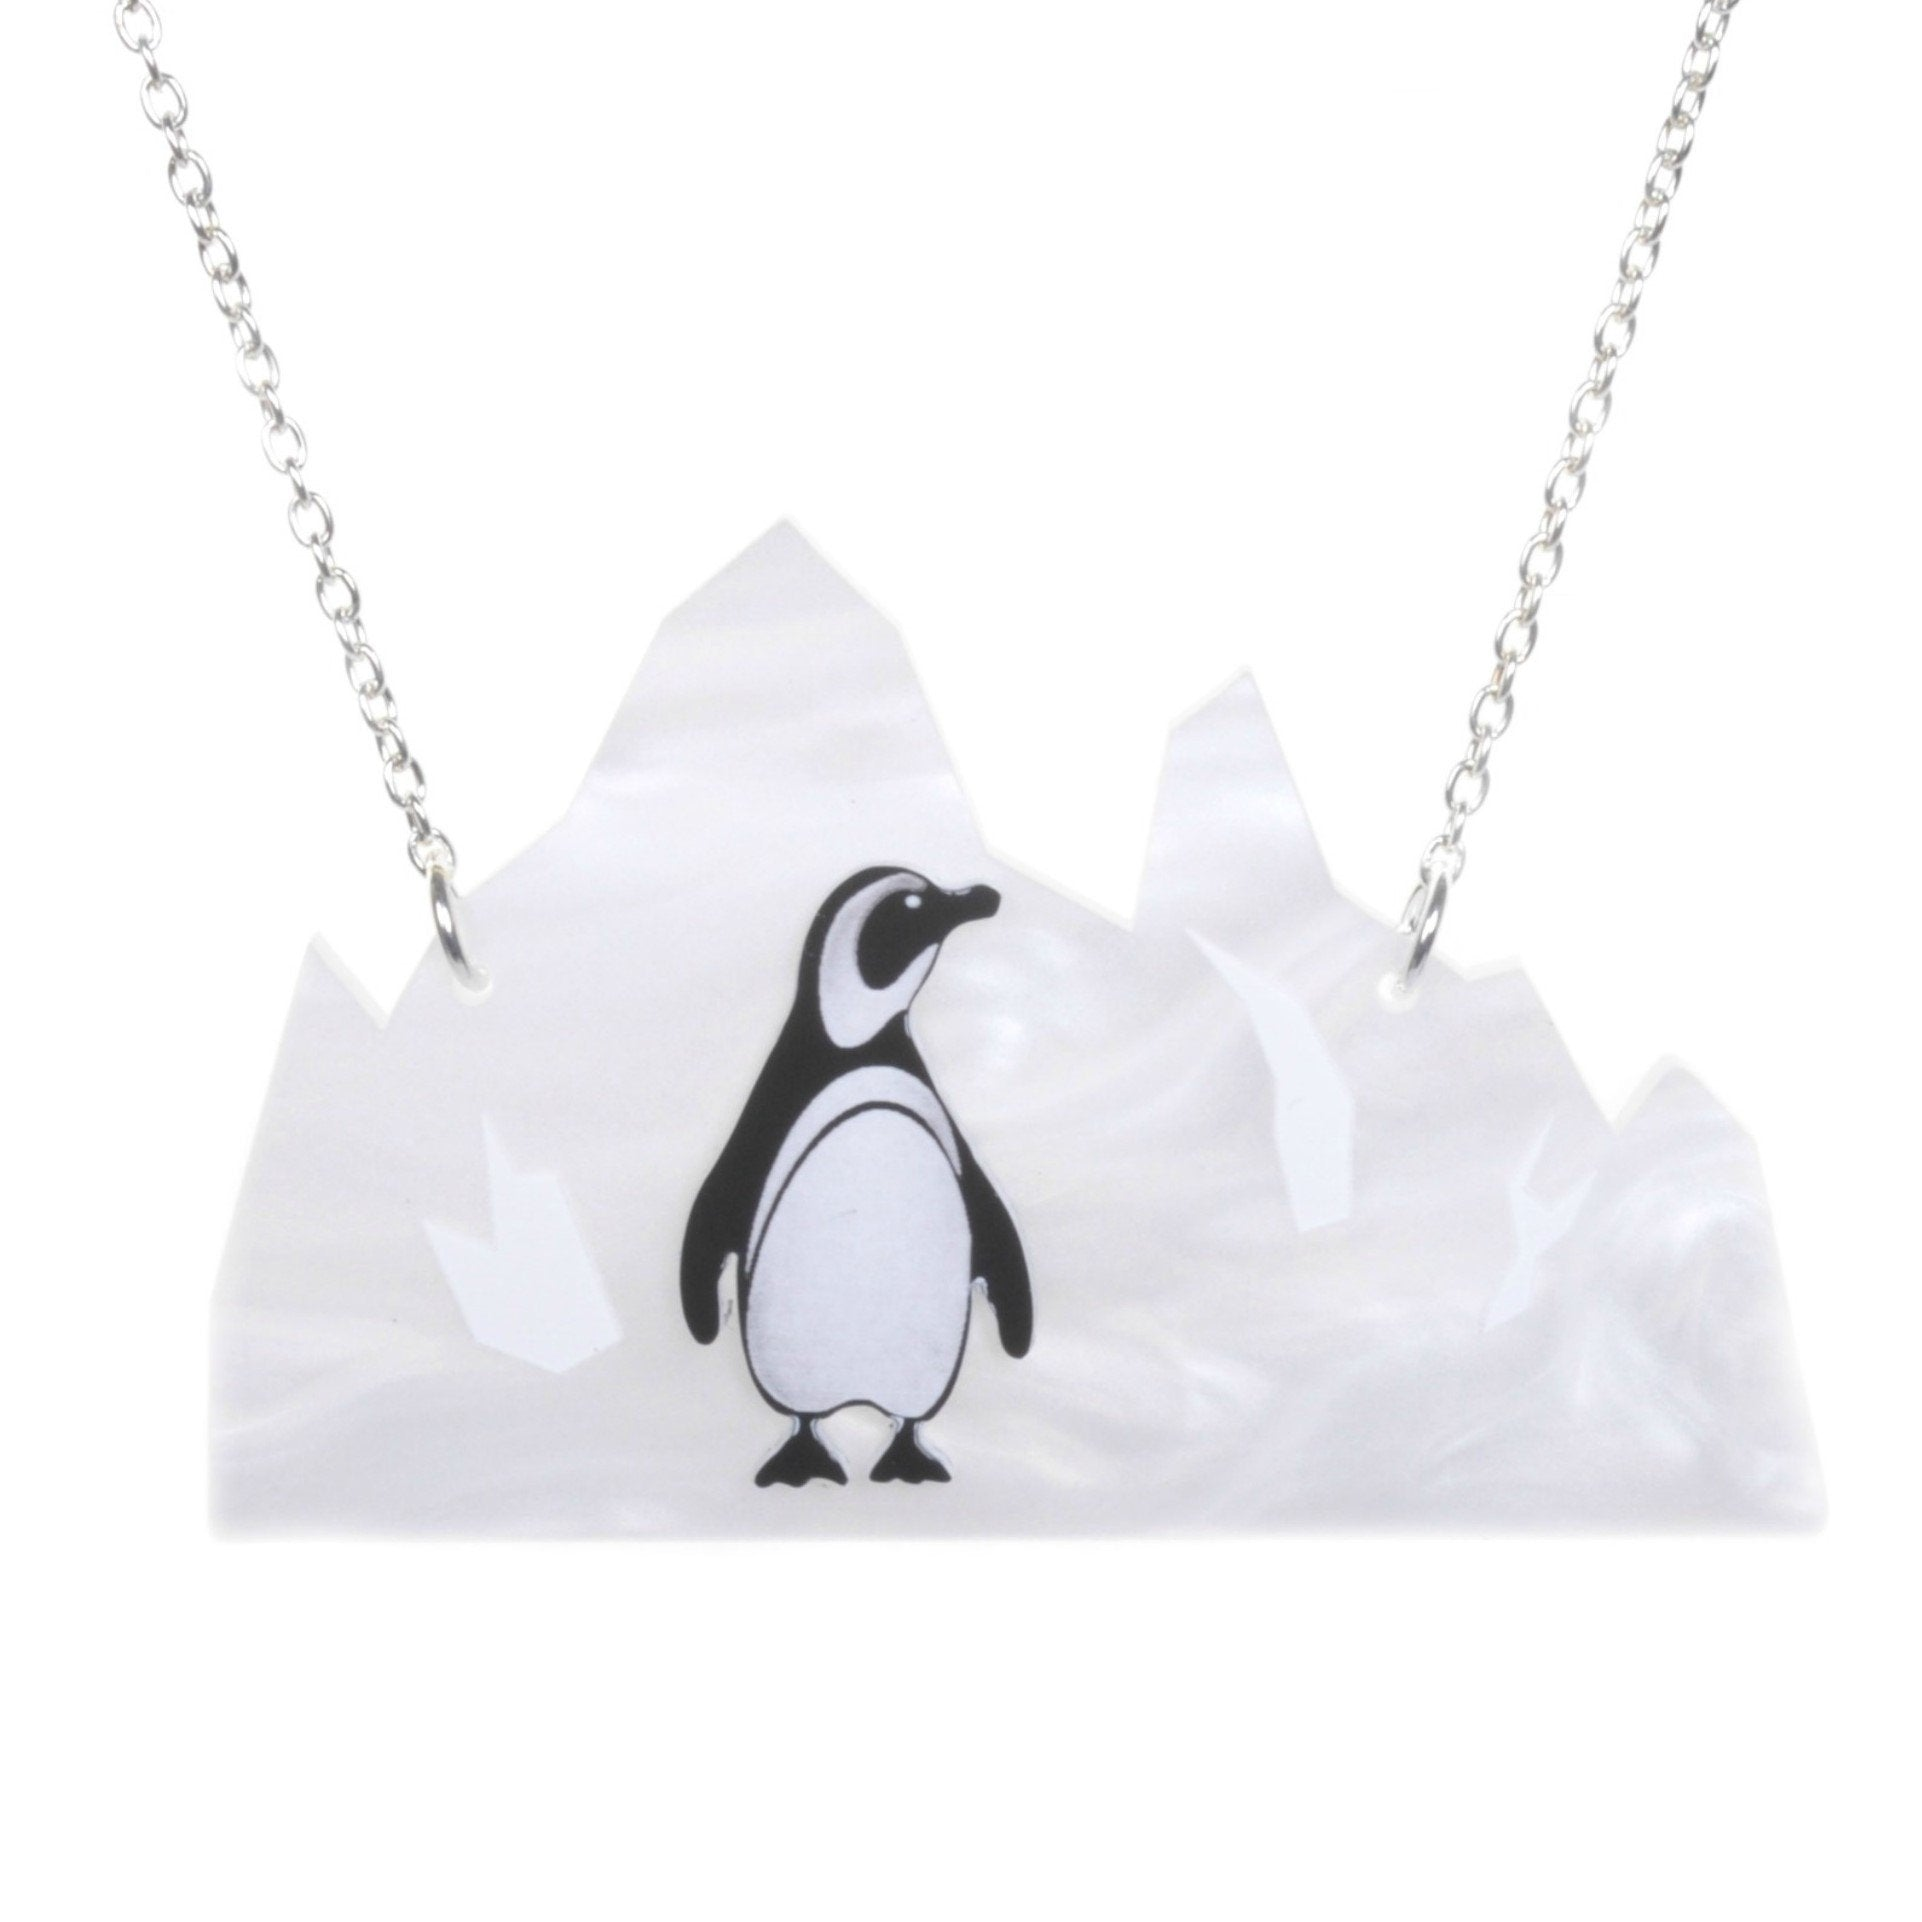 Acrylic Penguin Iceberg Necklace by Love Boutique - Minimum Mouse